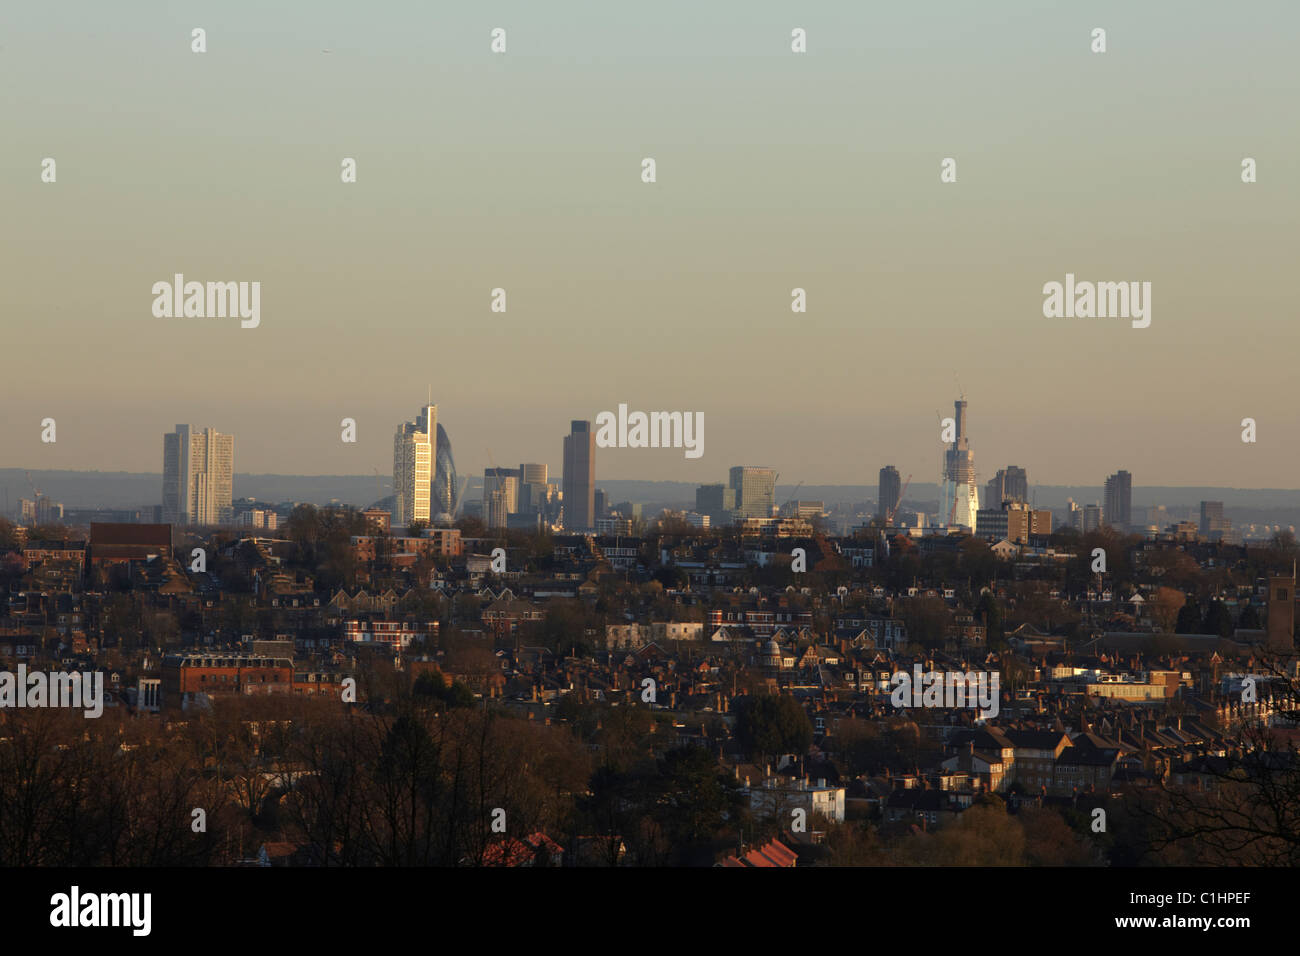 London skyline seen from Alexandra palace with the warm glow of sunset - Stock Image